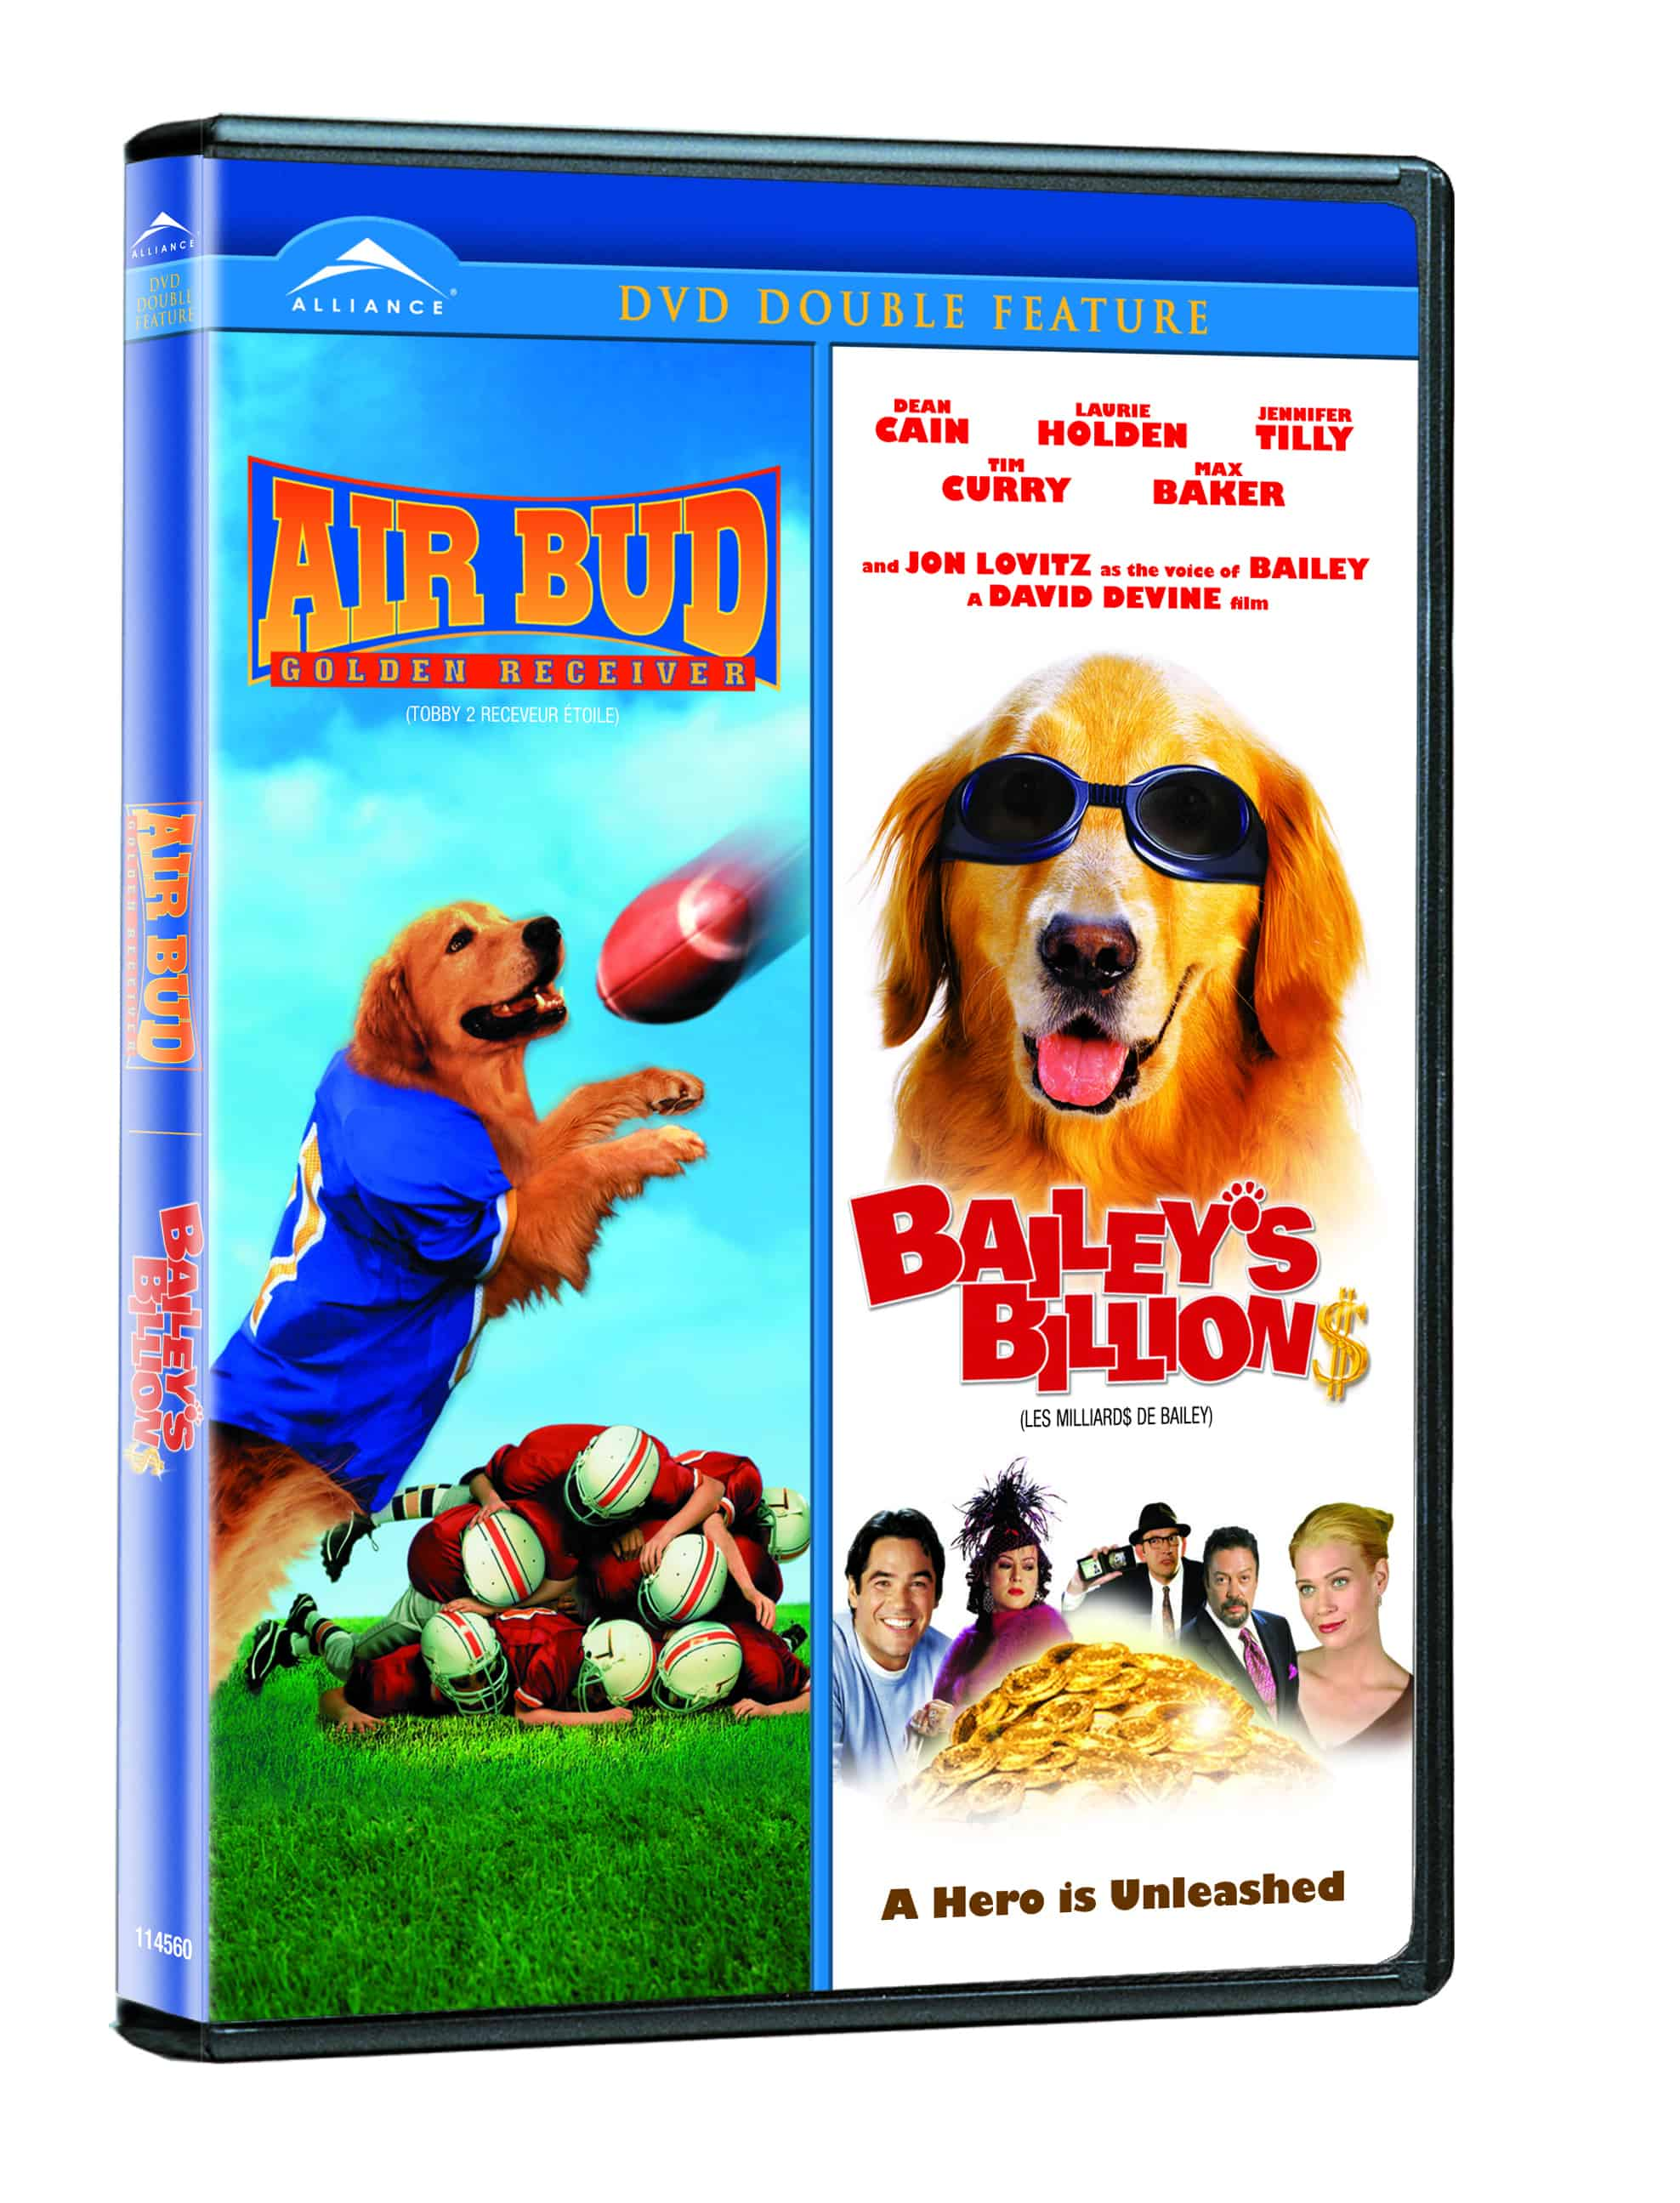 AIR BUD 2 / BAILEY'S BILLIONS DOUBLE FEATURE DVD Review